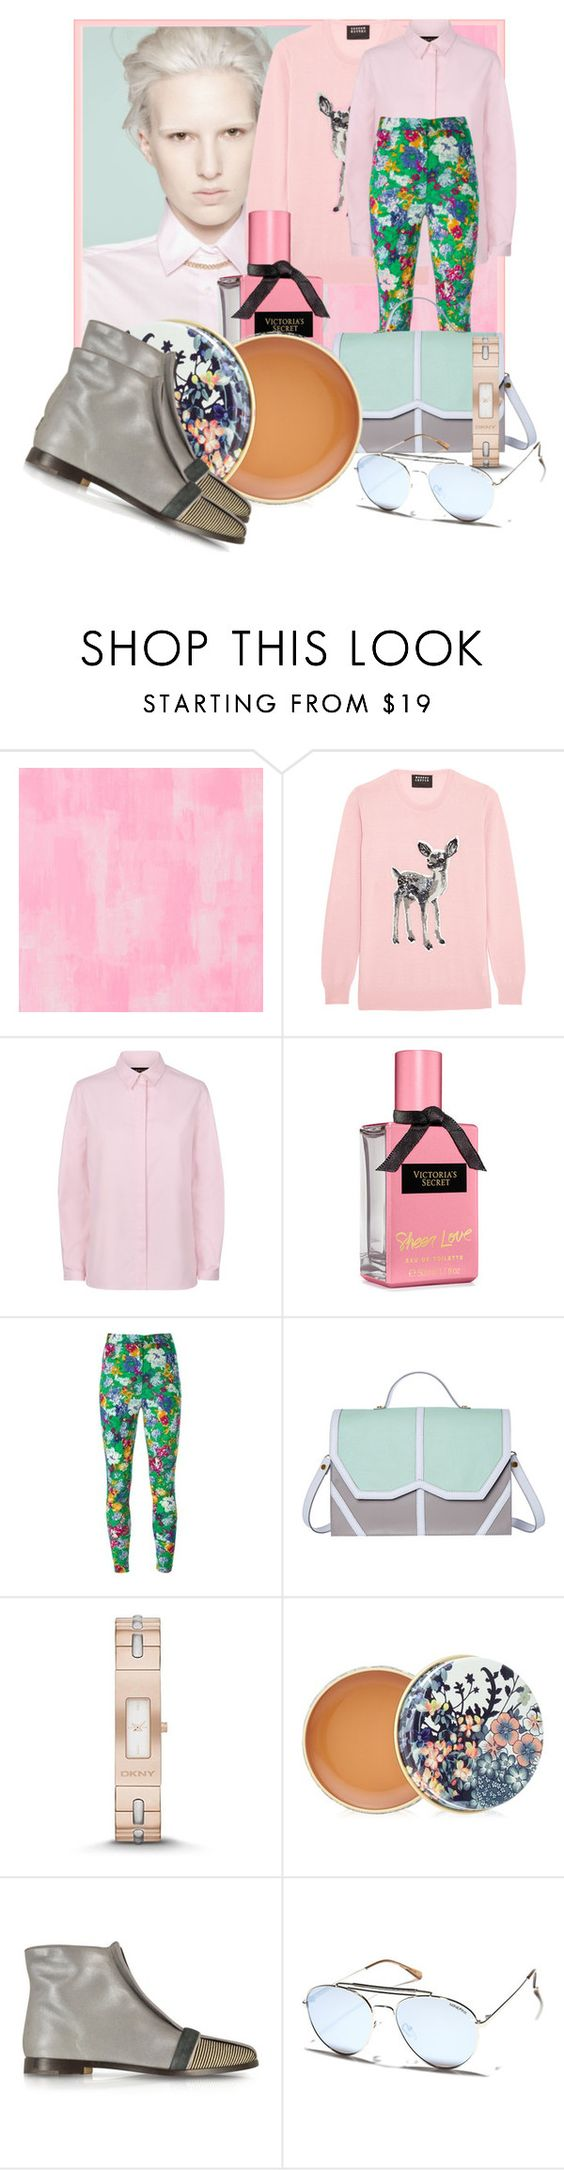 """Ma Vie en couleur /trois🎇"" by deloysfashions ❤ liked on Polyvore featuring Designers Guild, Markus Lupfer, Jaeger, Kenzo, Emeline Coates, DKNY, Paul & Joe, Zoe Lee and MINKPINK"